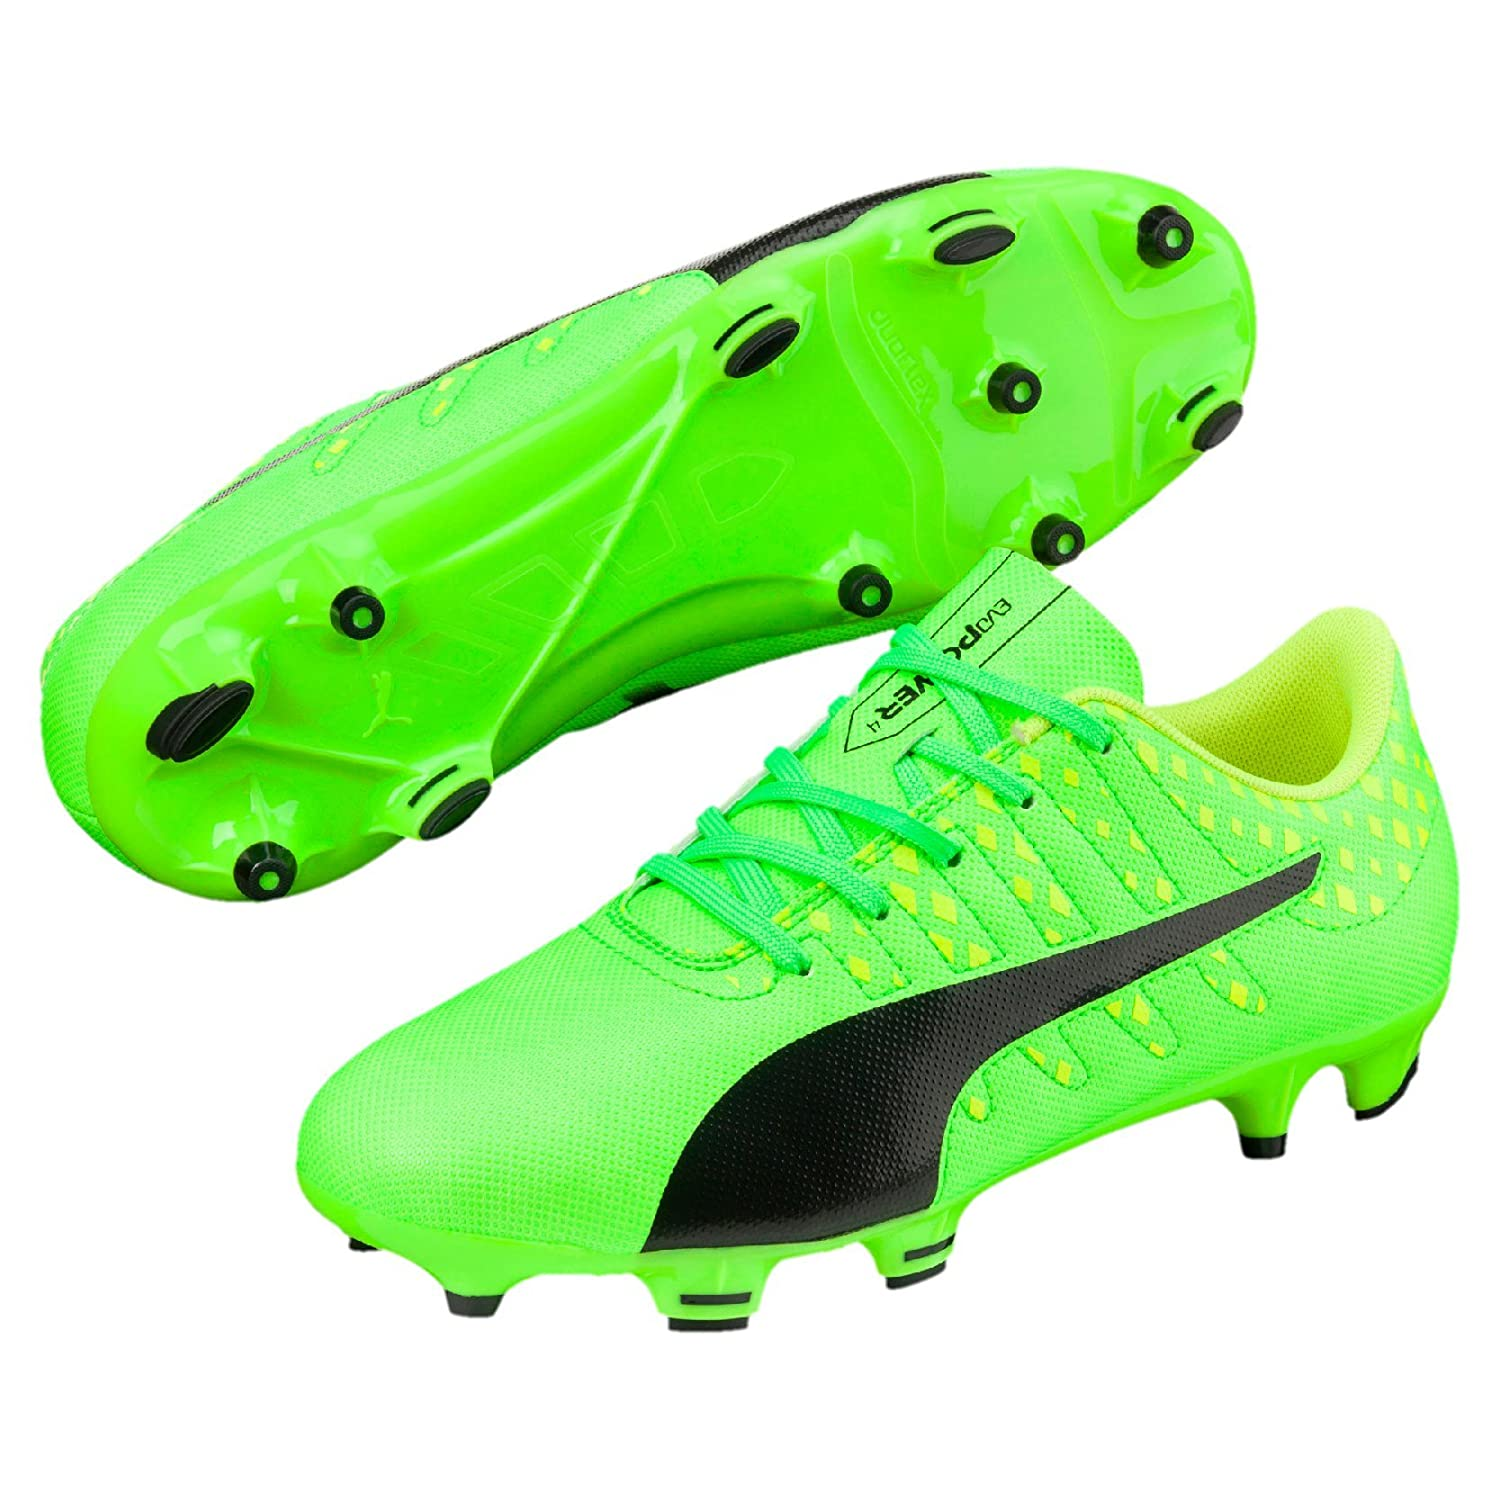 1b4e8fa72 Puma Boy's Evopower Vigor 4 Fg Jr Green Gecko, Black and Safety Yellow  Sports Shoes - 4 UK/India (37 EU): Buy Online at Low Prices in India -  Amazon.in